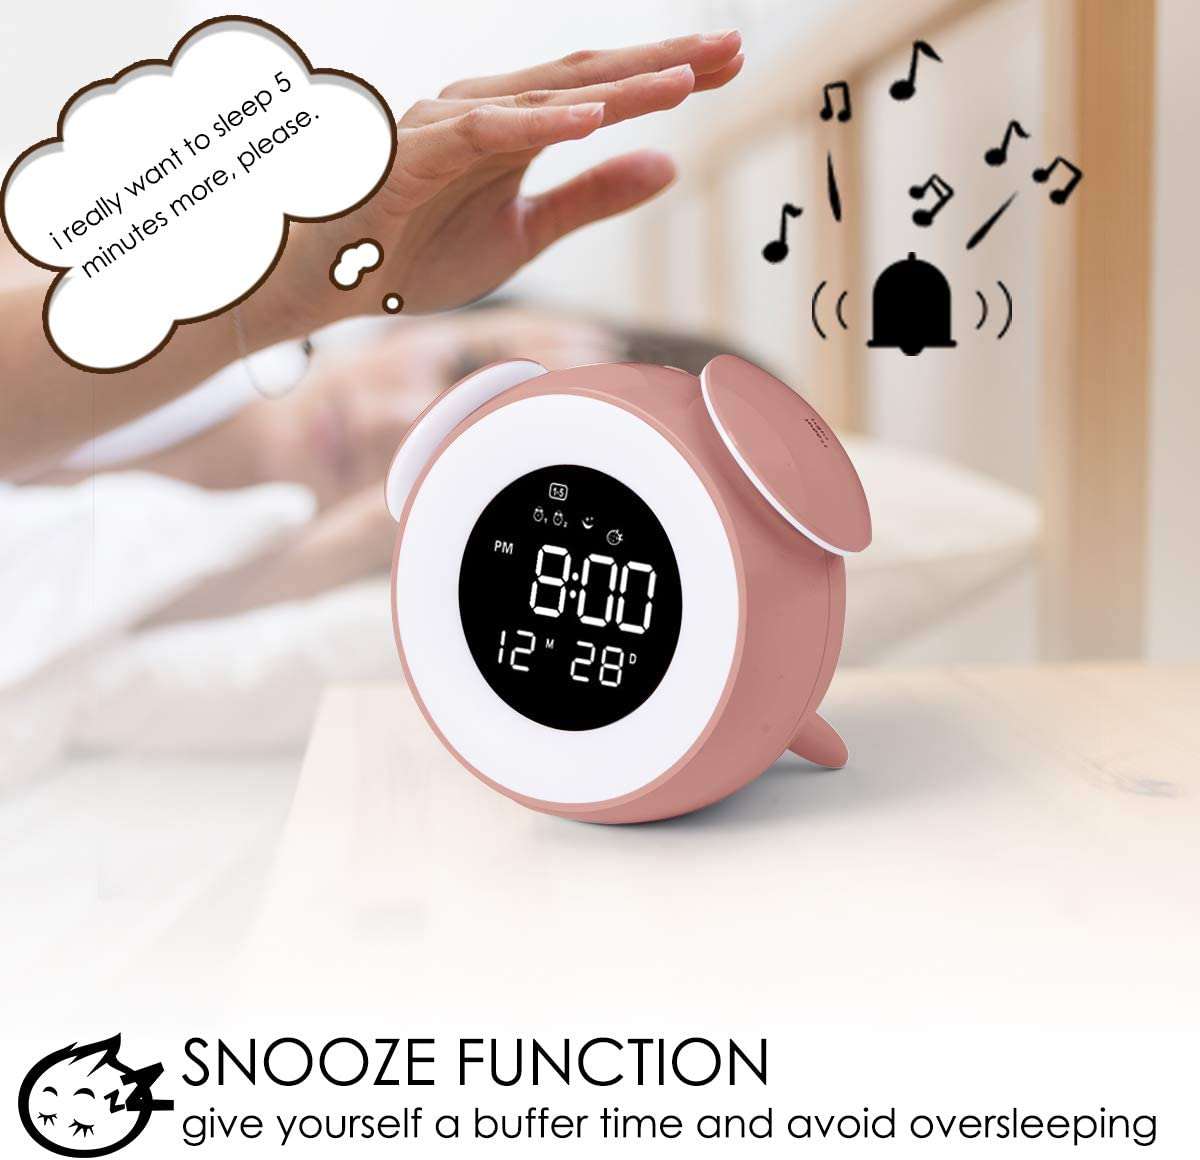 Bedroom Blue Kids Alarm Clock Dual Alarms Wake Up Light Night Light Table Bedside Lamp with Snooze Touch Control Function 25 Natural Sounds USB Charging Port for Bedside HOMVILLA Alarm Clock